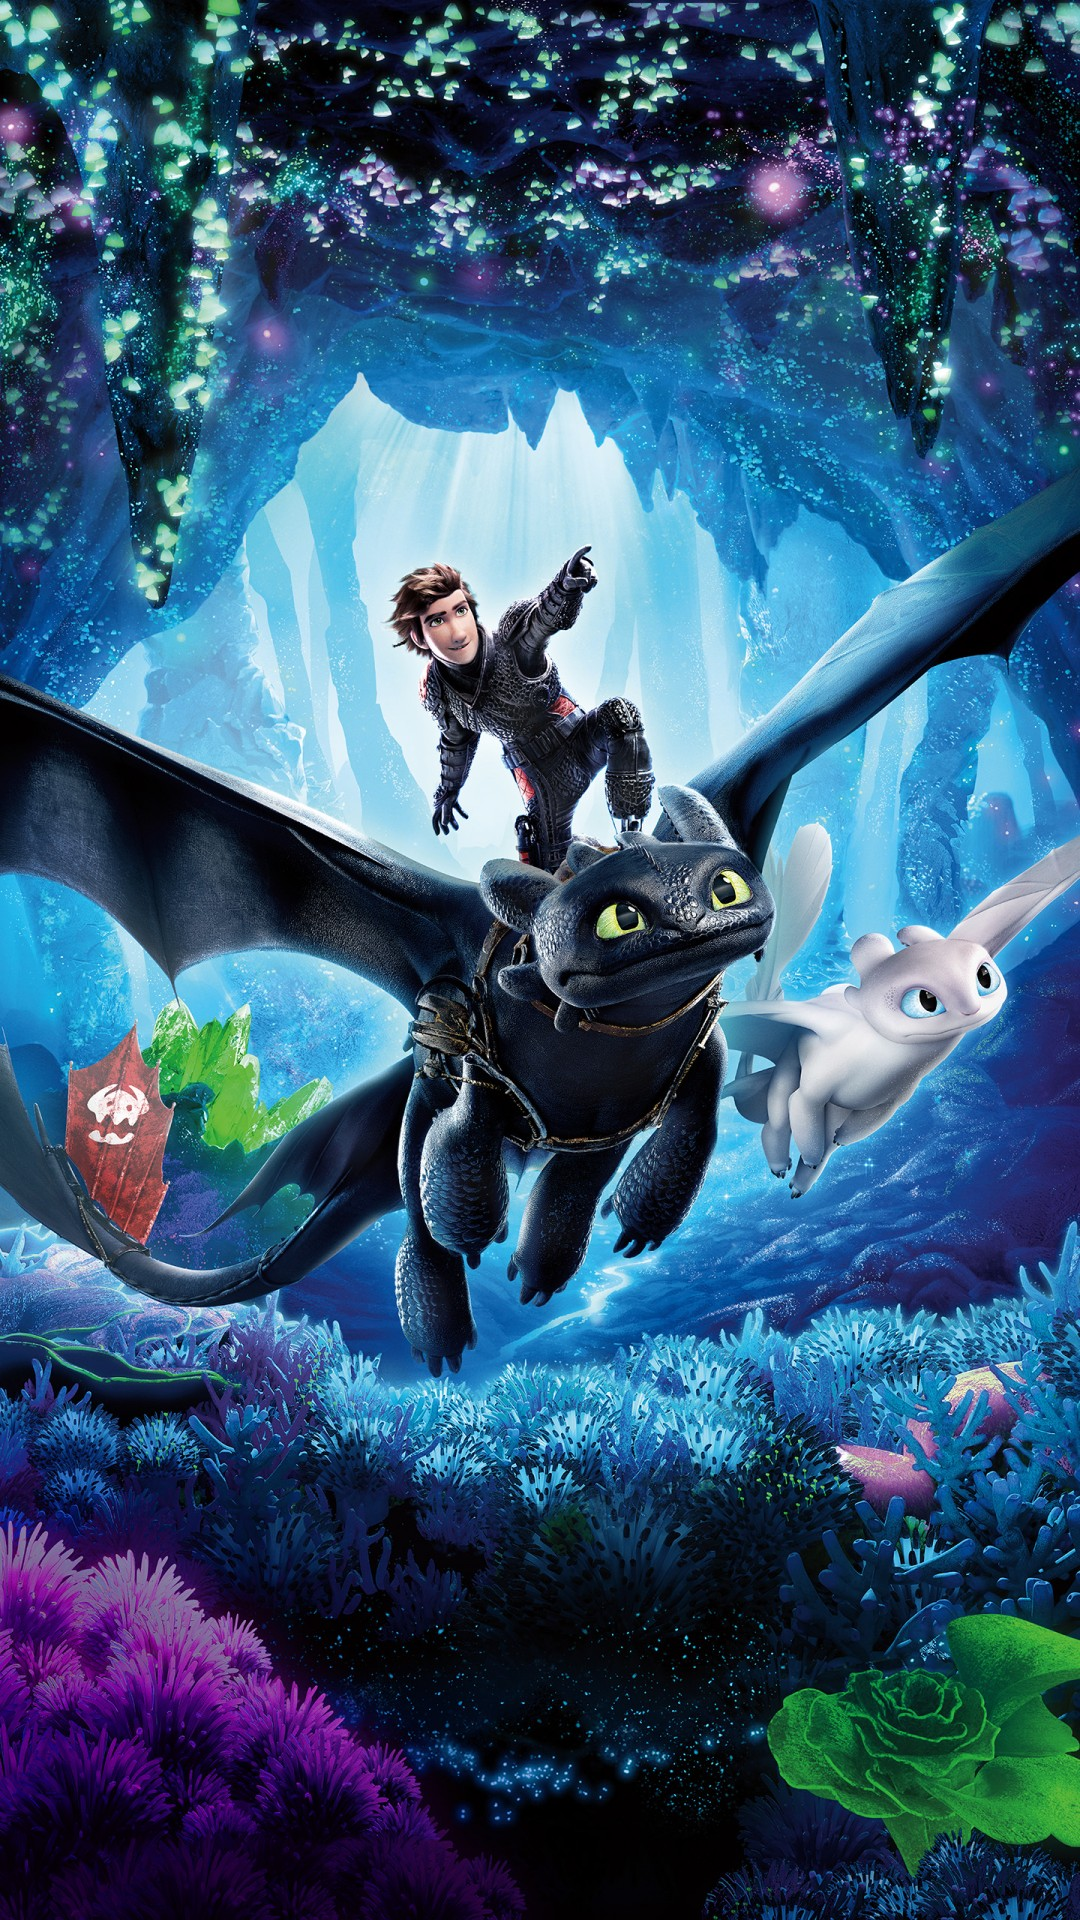 Latest Hd Wallpapers For Iphone 7 How To Train Your Dragon 3 The Hidden World 4k 8k